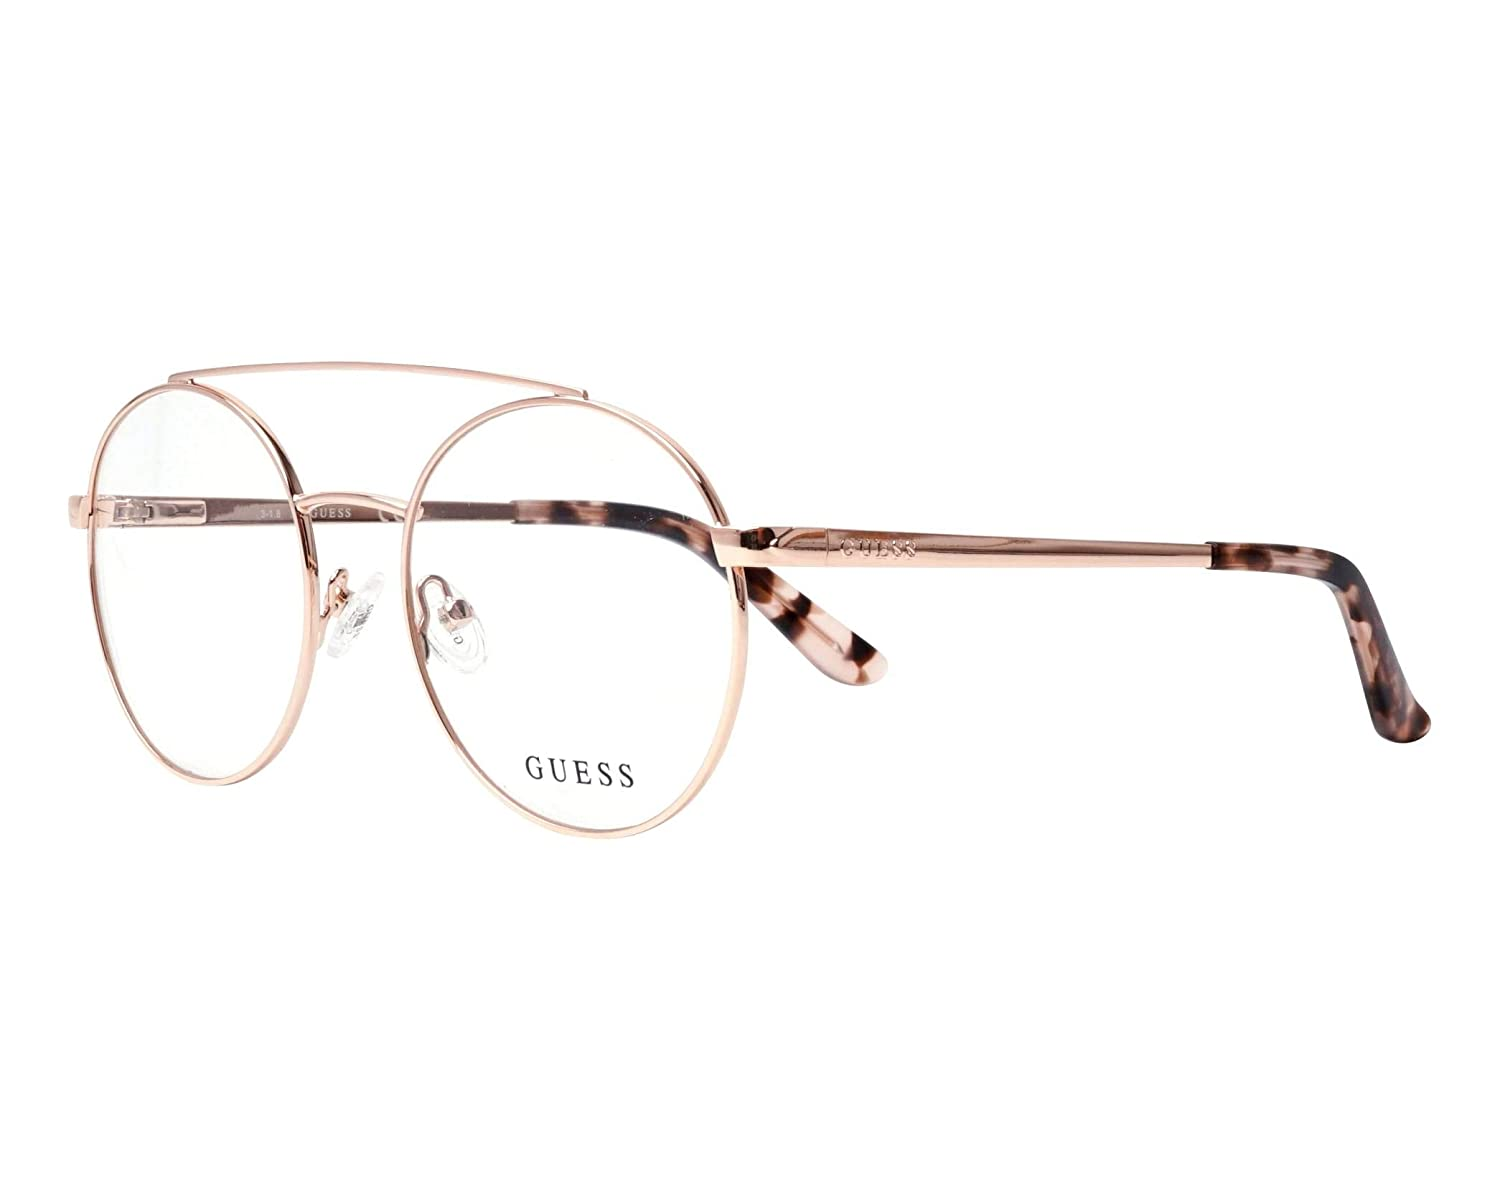 Eyeglasses Guess GU 2714 028 shiny rose gold